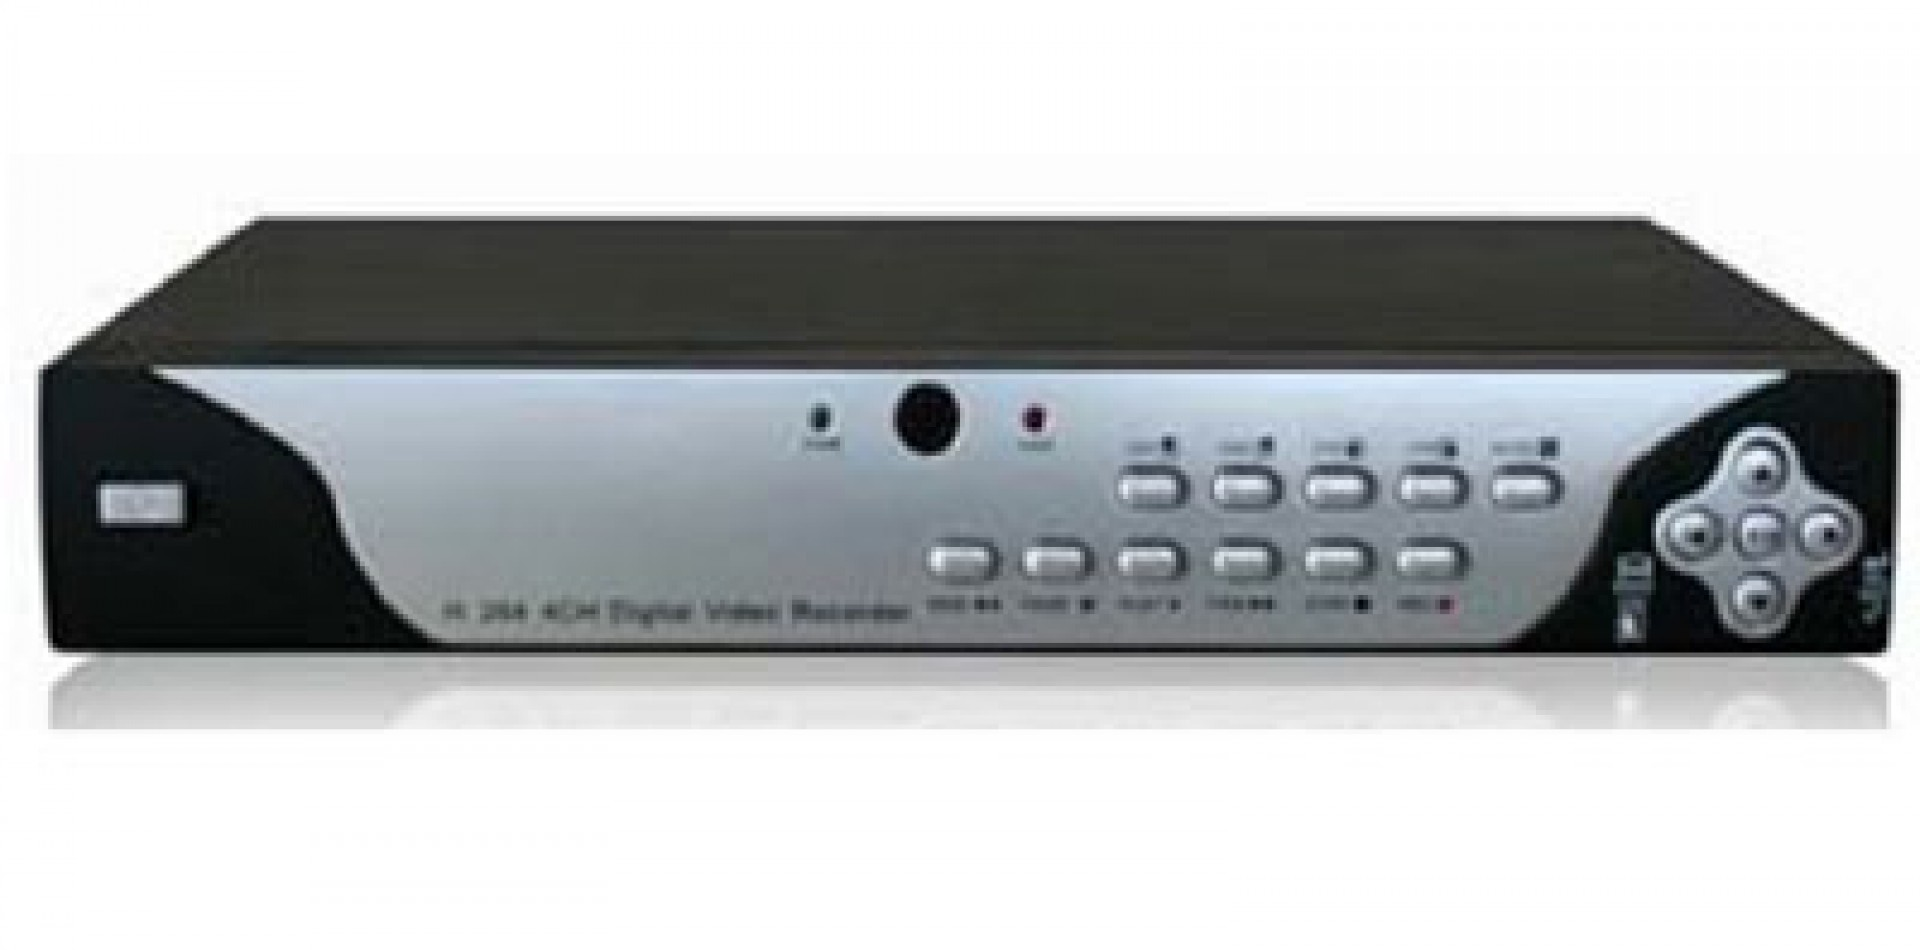 JB SECURITY DVR 4H264